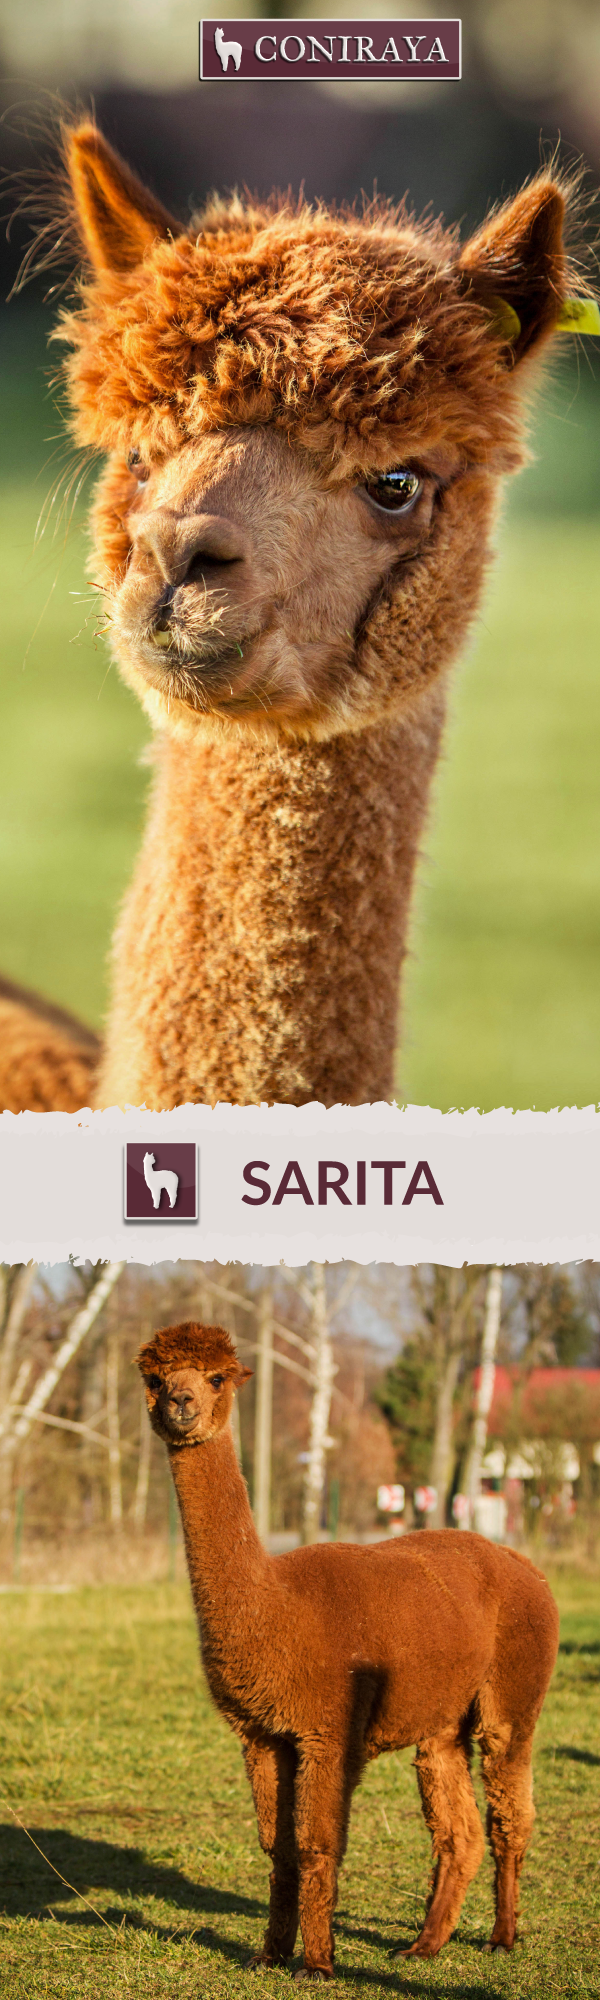 Meet one of our cute Coniraya alpaca girls - Sarita. She was born in 2010. Her fiber is in color : Medium Brown. For more informations check her profile on our website.